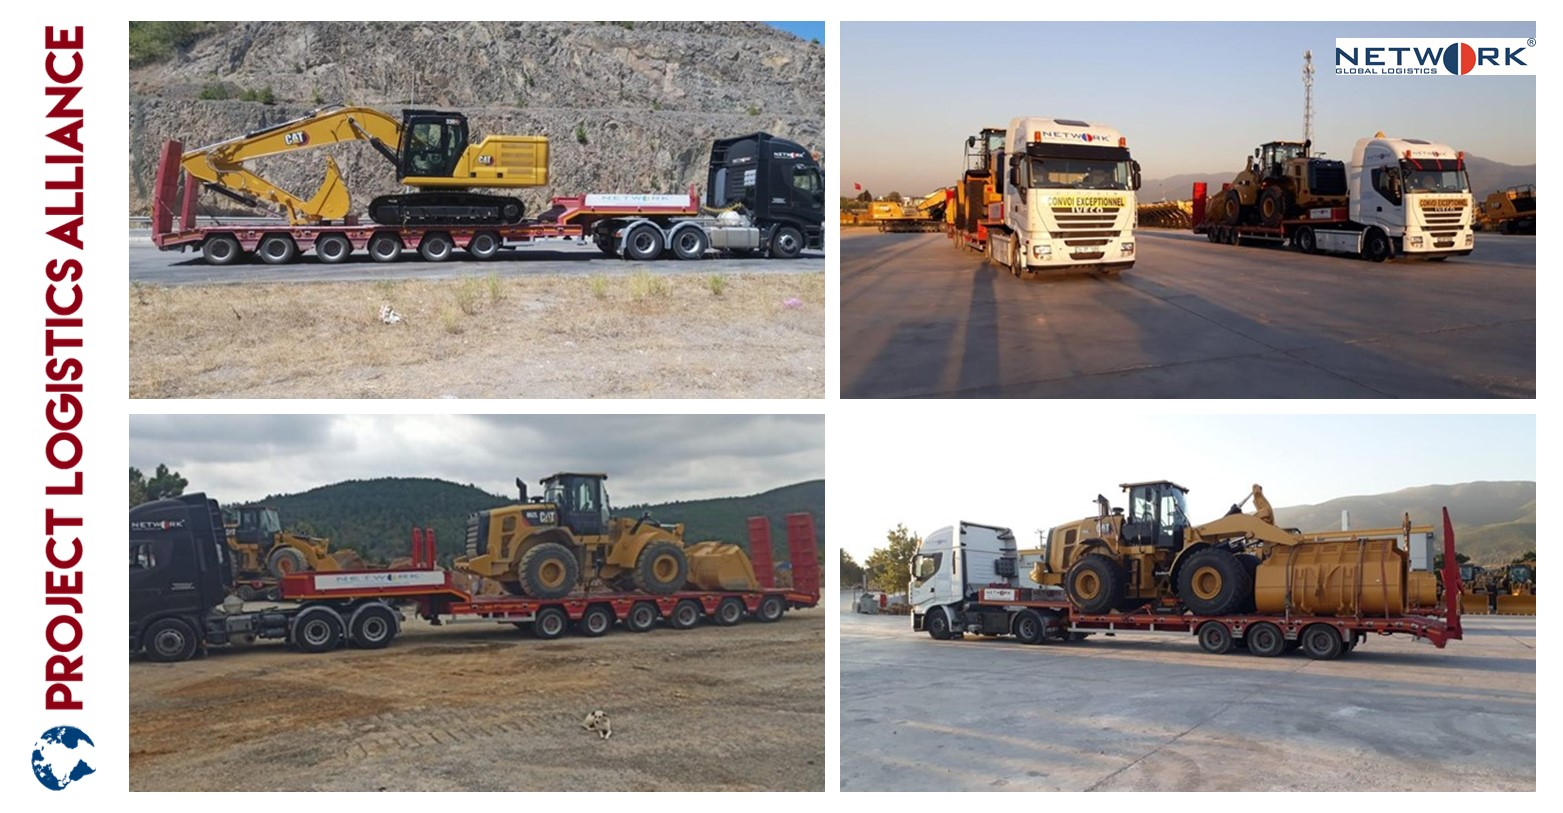 Network Global Logistics Transports Construction Equipment To Bulgaria